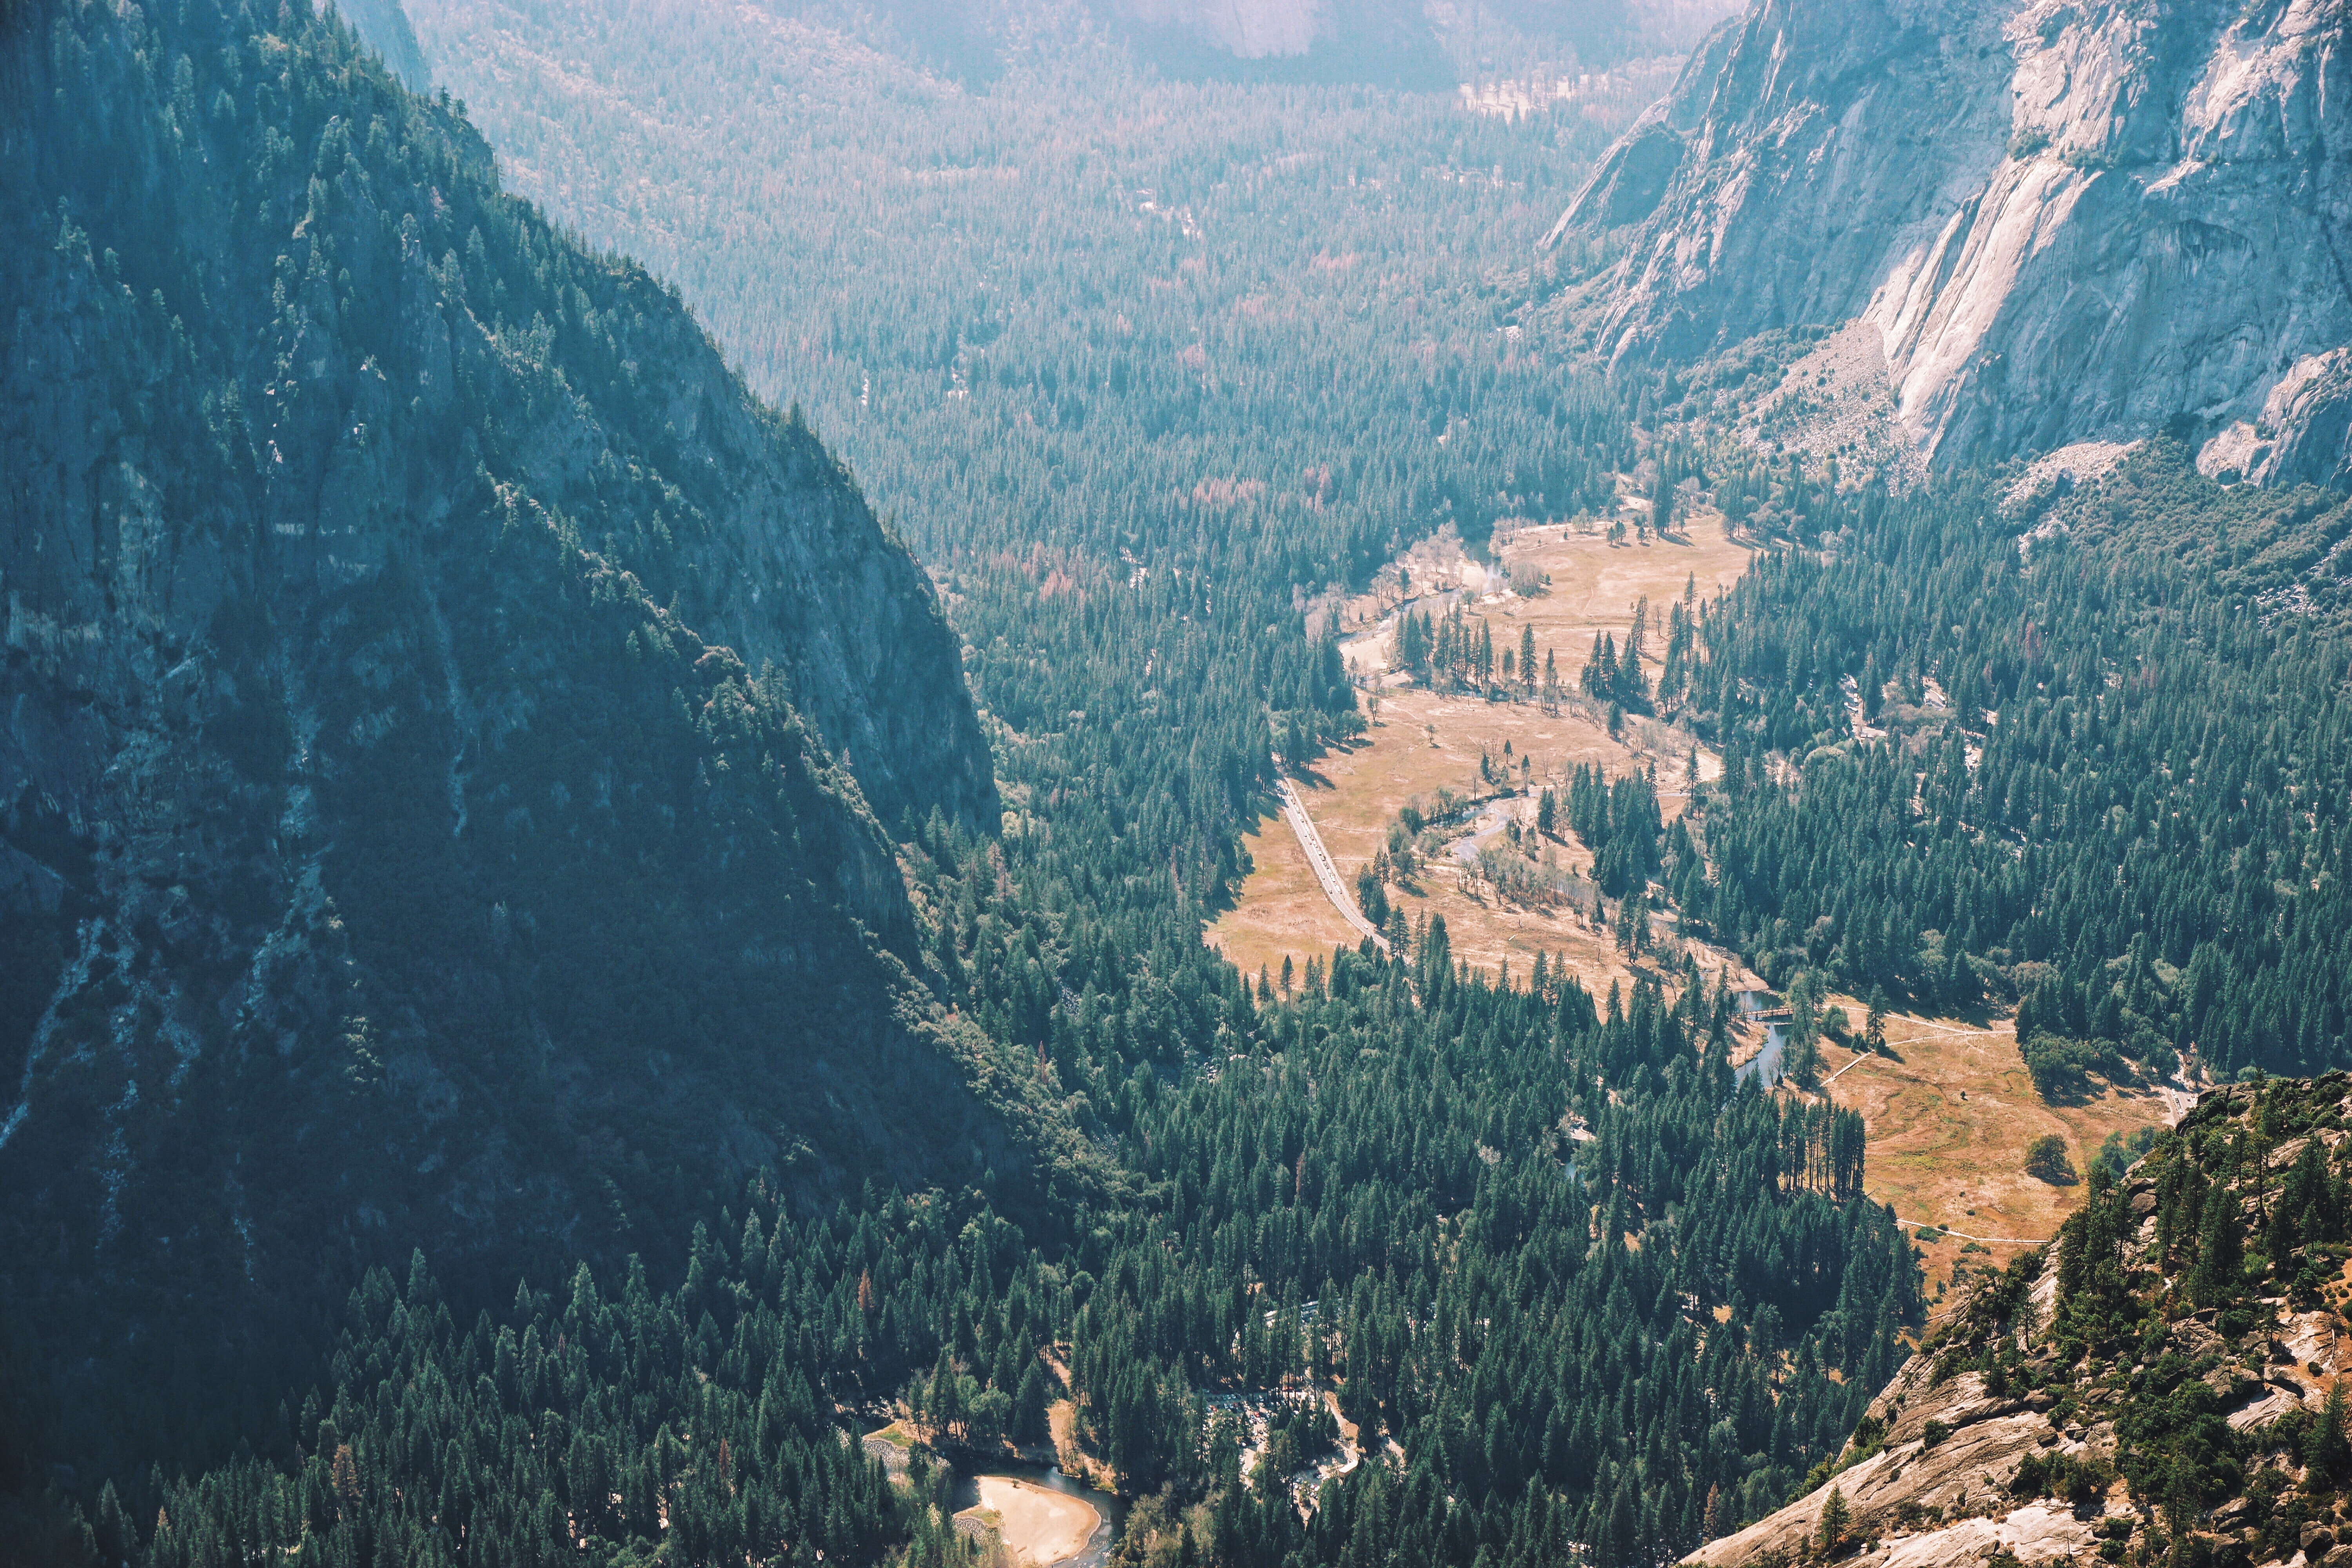 Mountain landscape in Yosemite with green forest trees and rocky hillsides